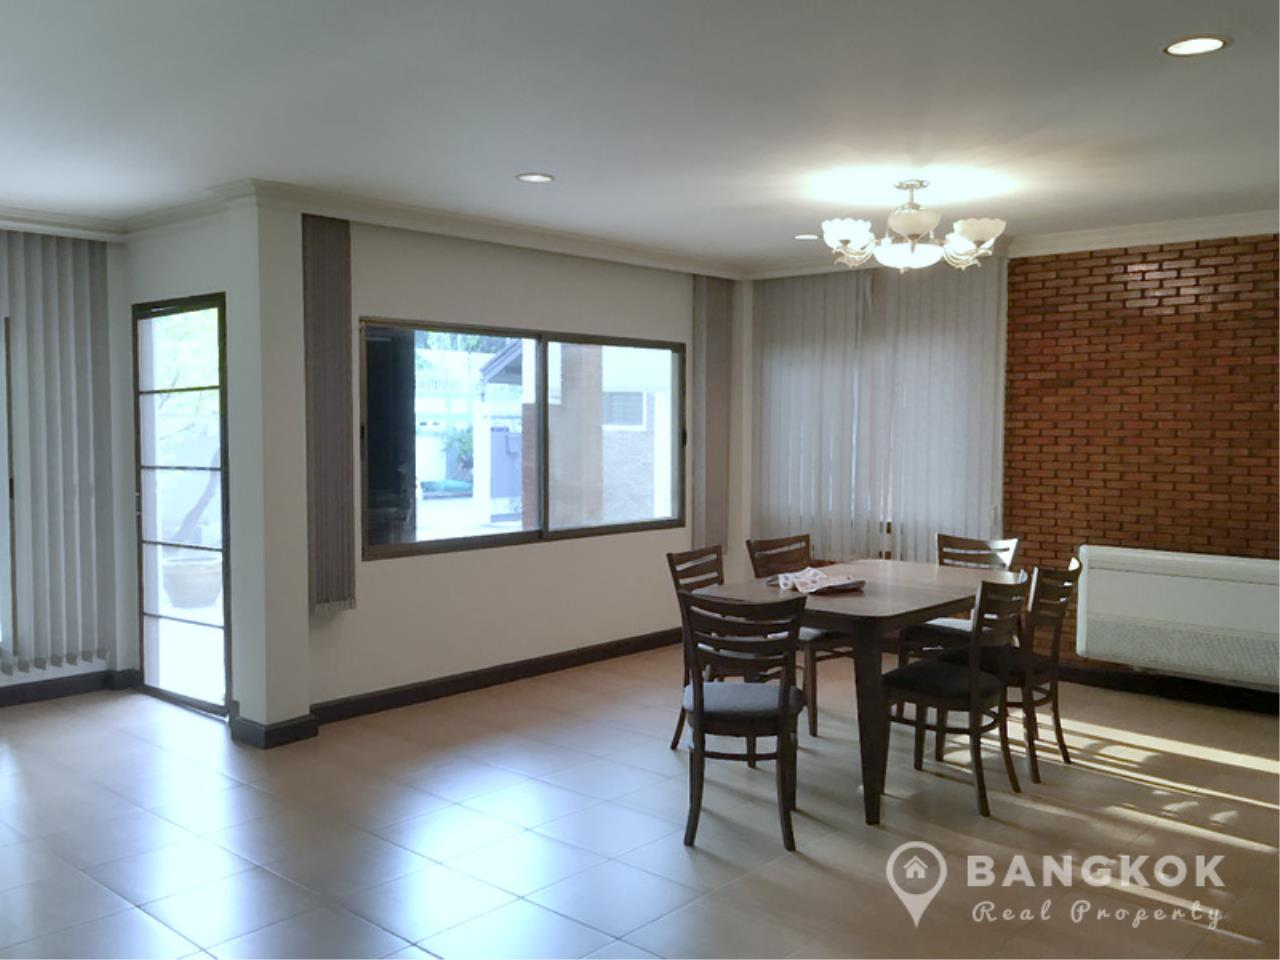 Bangkok Real Property Agency's Detached Spacious 3 Bed 3 Bath house with Garden in Thonglor  4